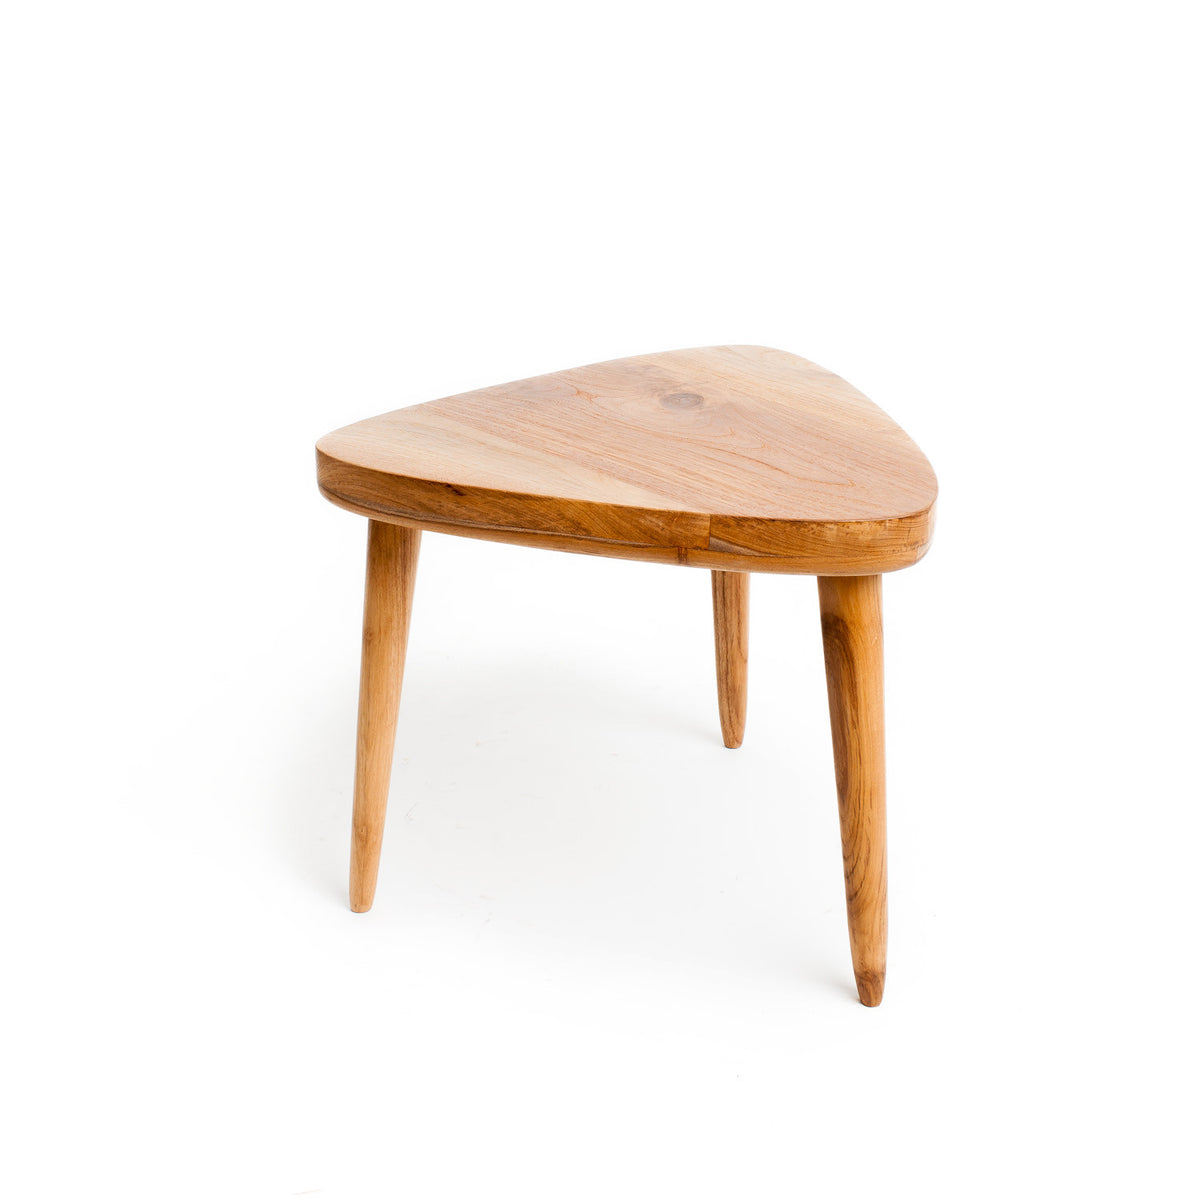 George Side Table - Teardrop